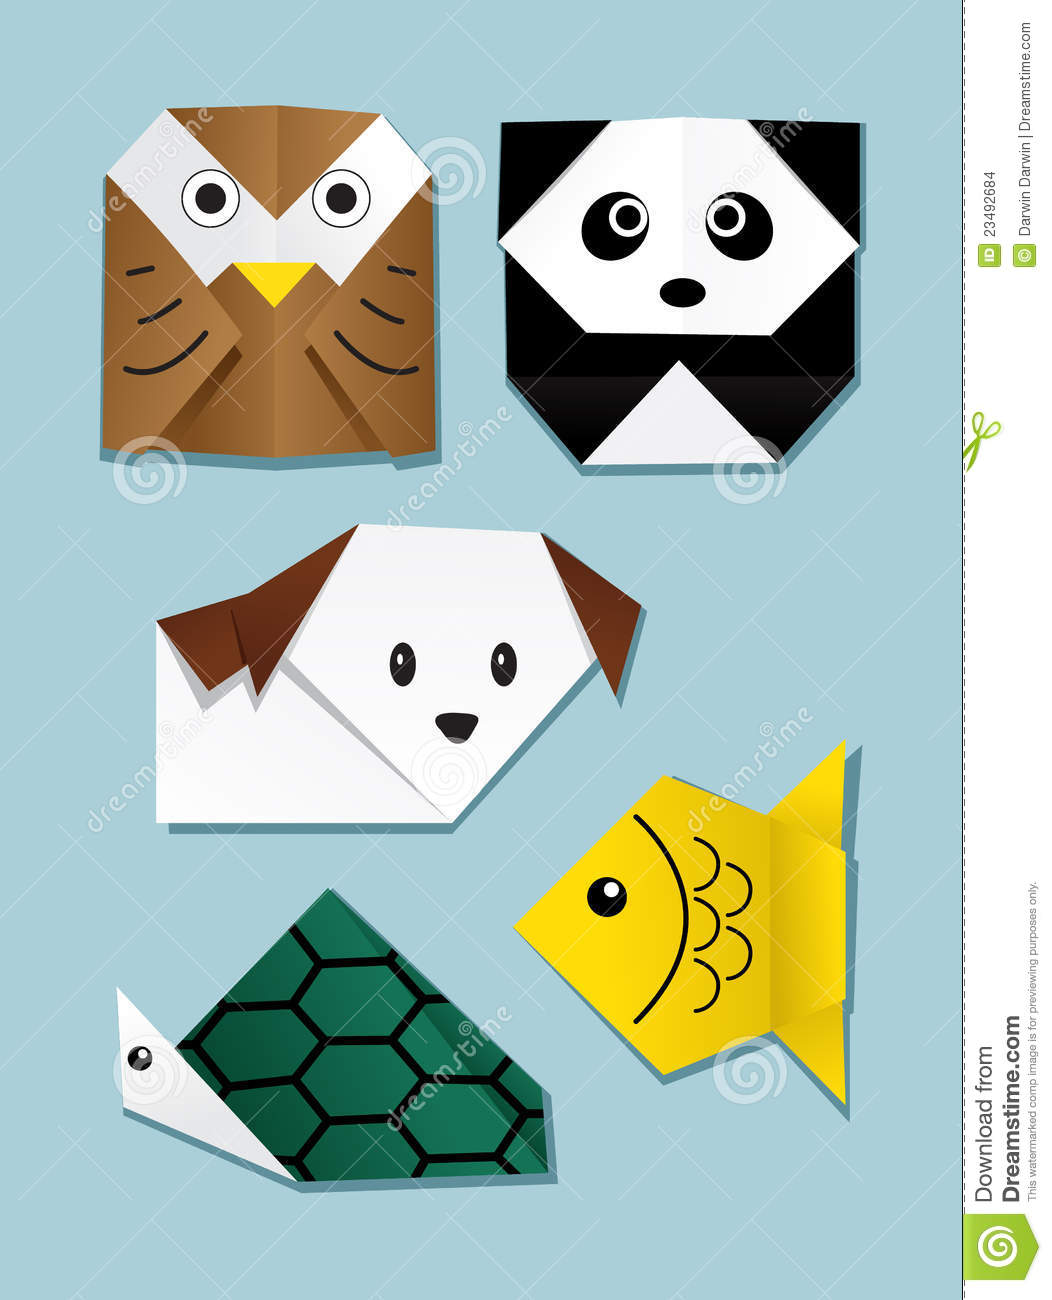 Origami Animal Stock Vector Illustration Of Group Symbol 23492684